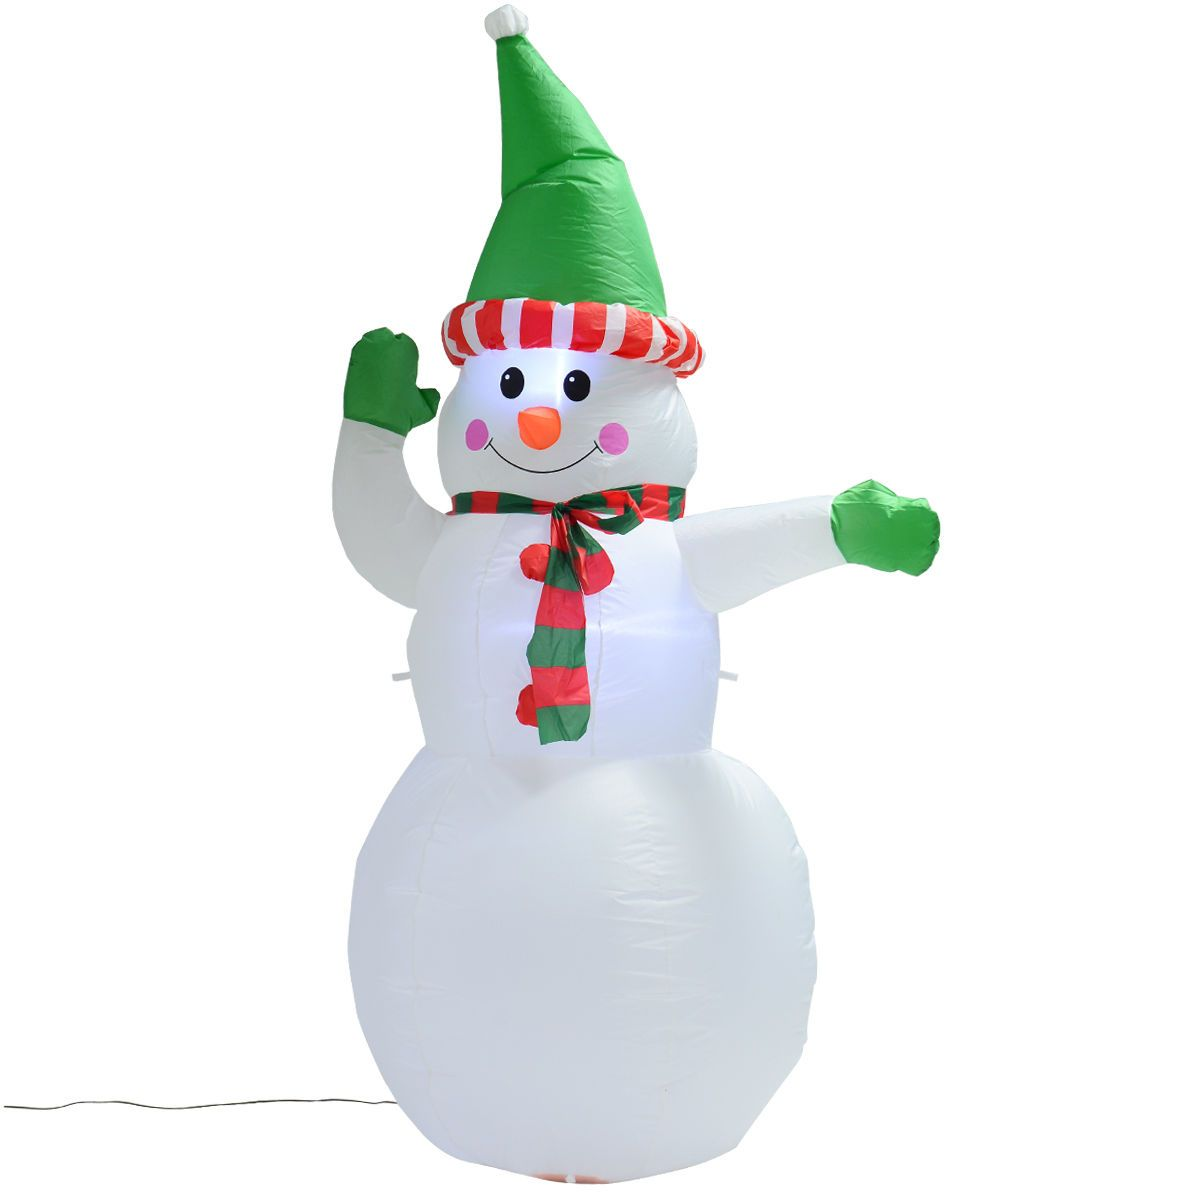 5Ft Airblown Inflatable Christmas Snowman Gemmy Decor Lighted Lawn ...